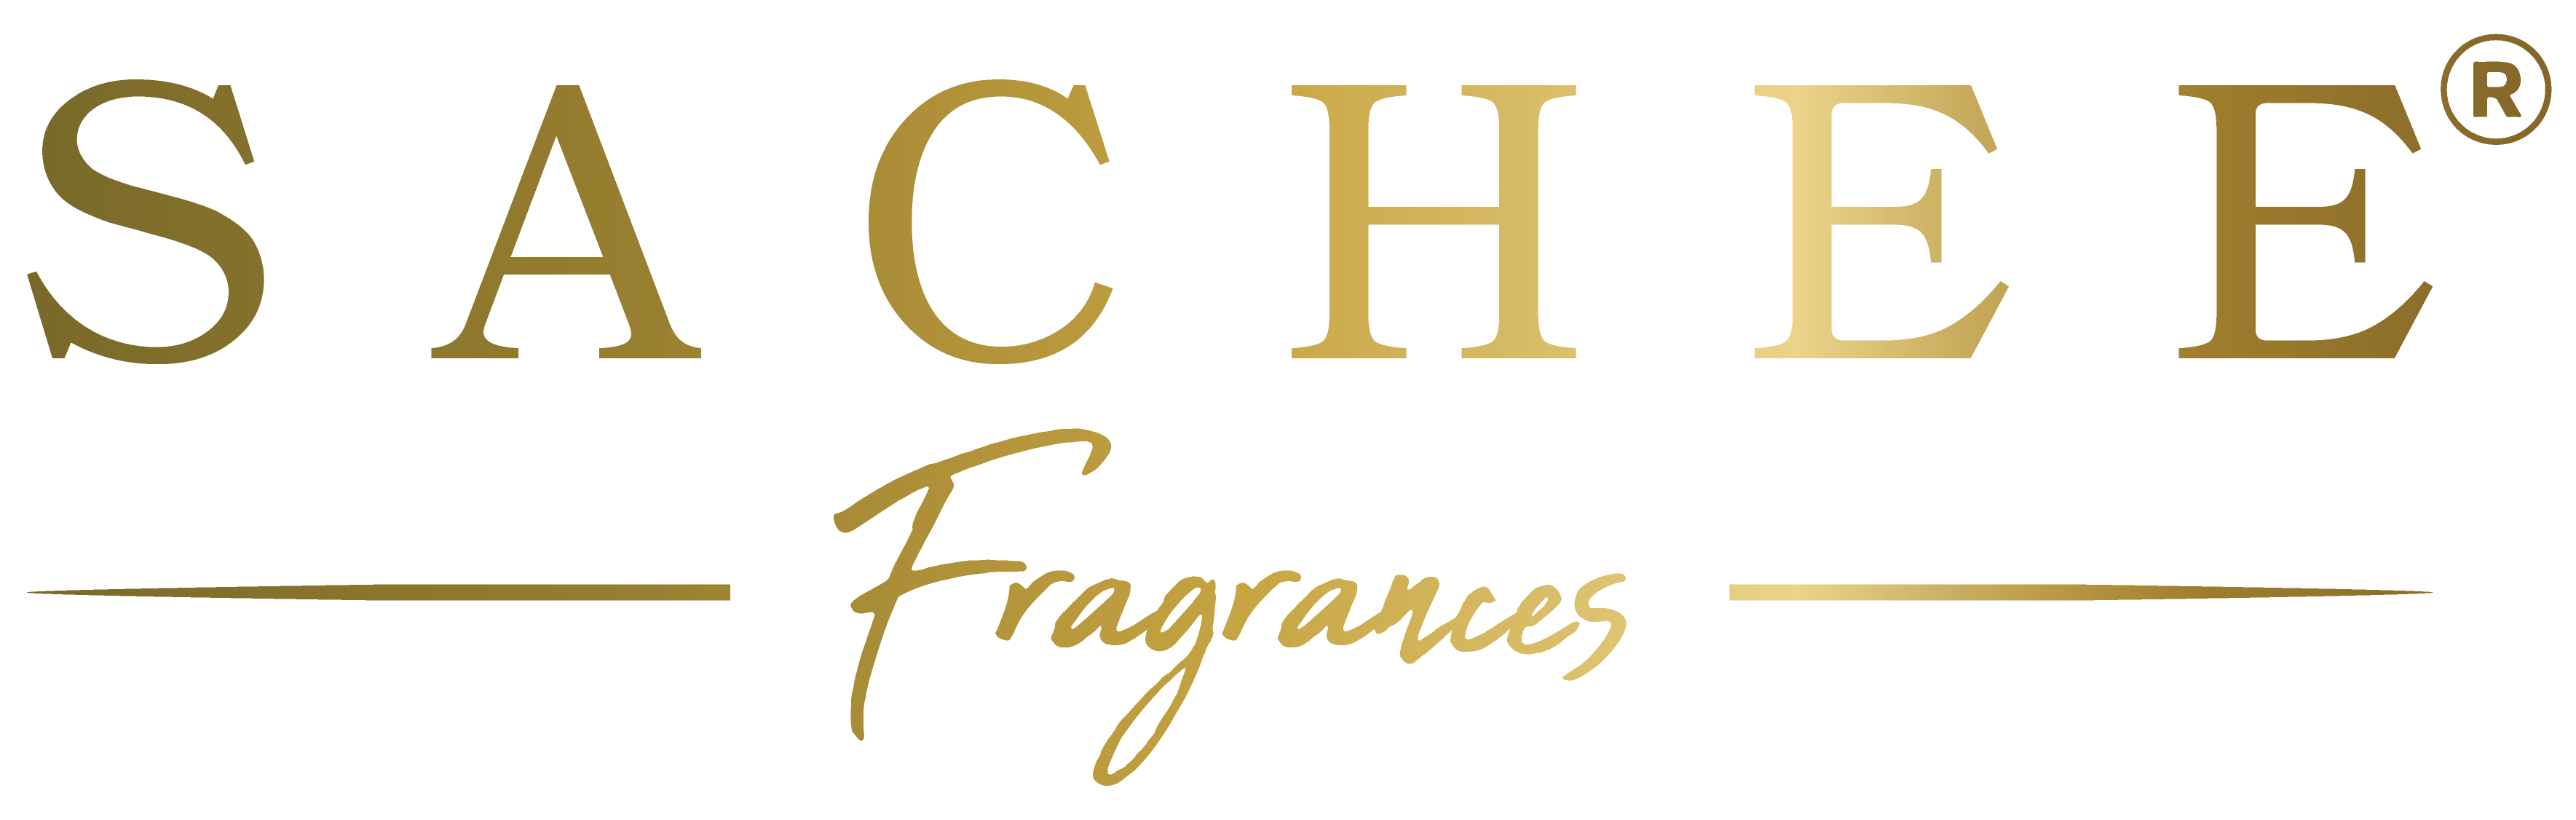 Sachee Fragrances and Chemicals Limited